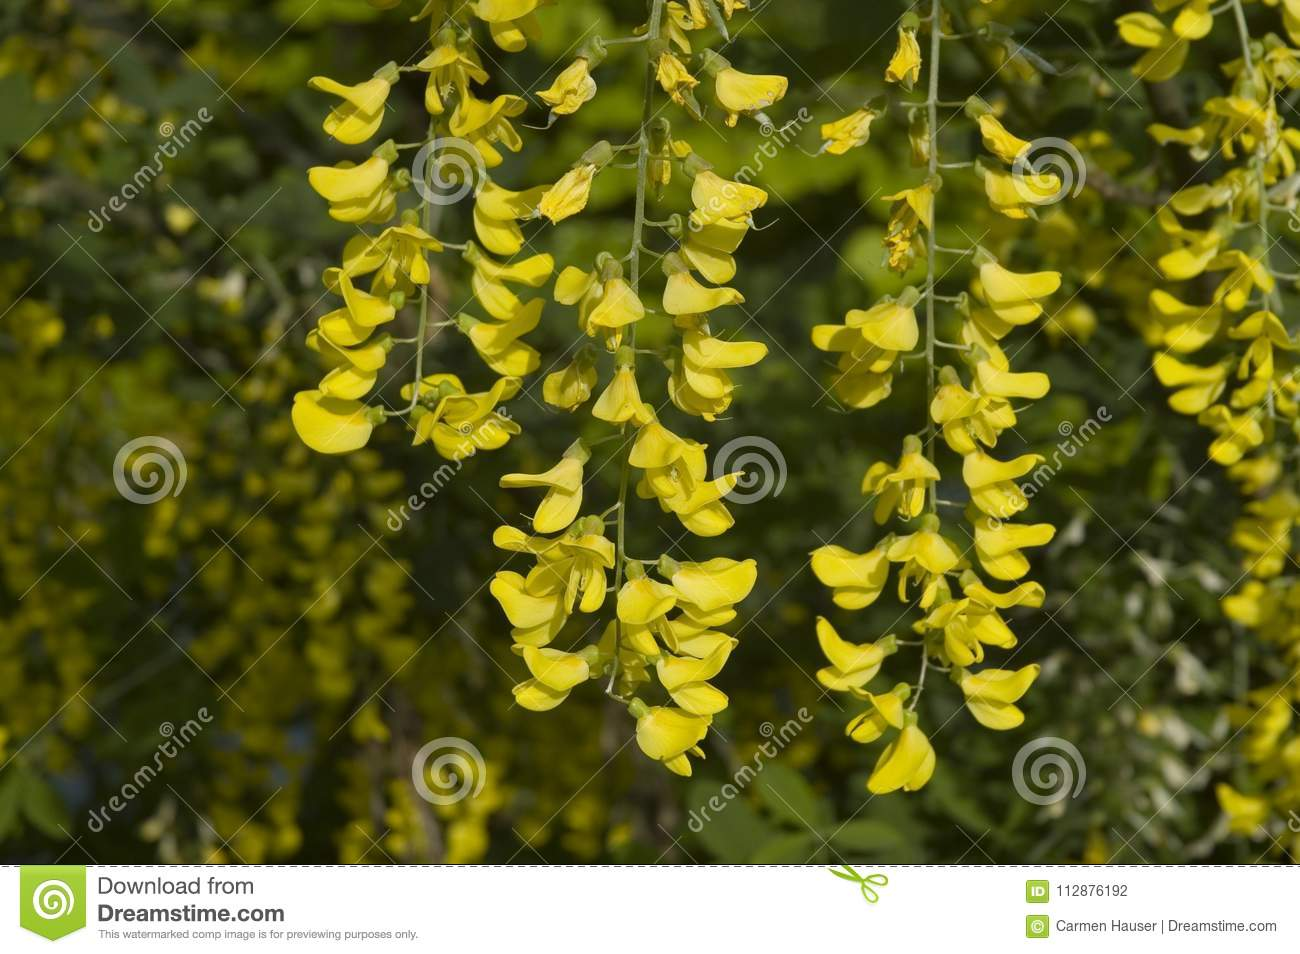 Yellow Flowers Of A Golden Chain Tree Stock Photo Image Of